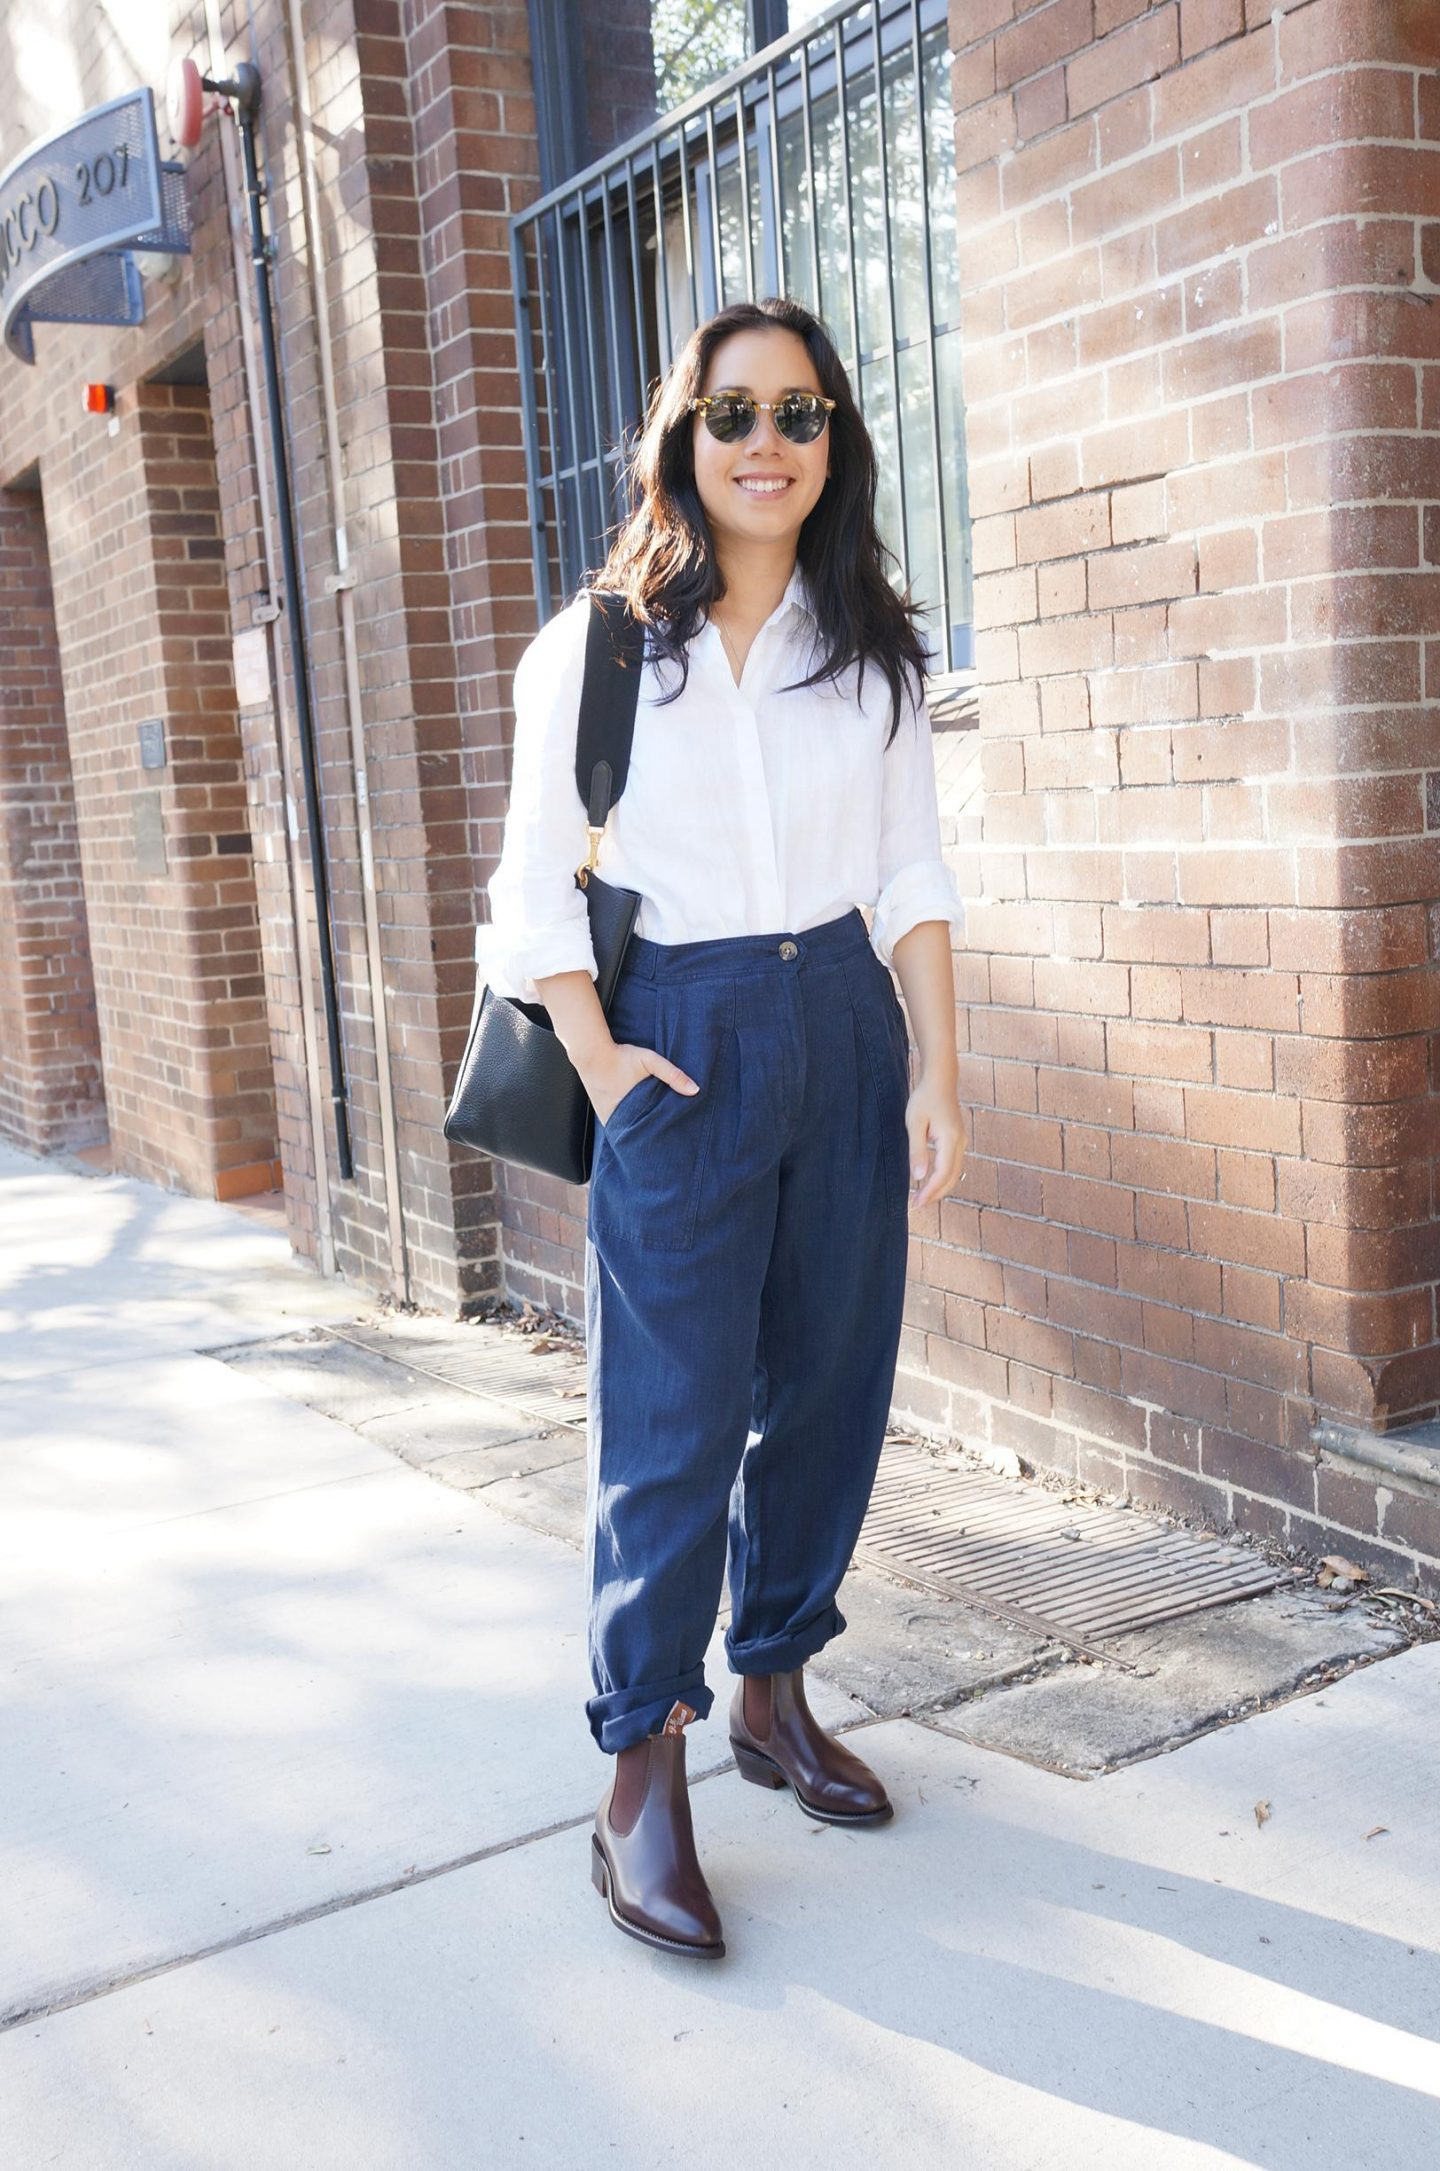 asian female blogger wearing r.m. williams boots in lady yearling style in chestnut